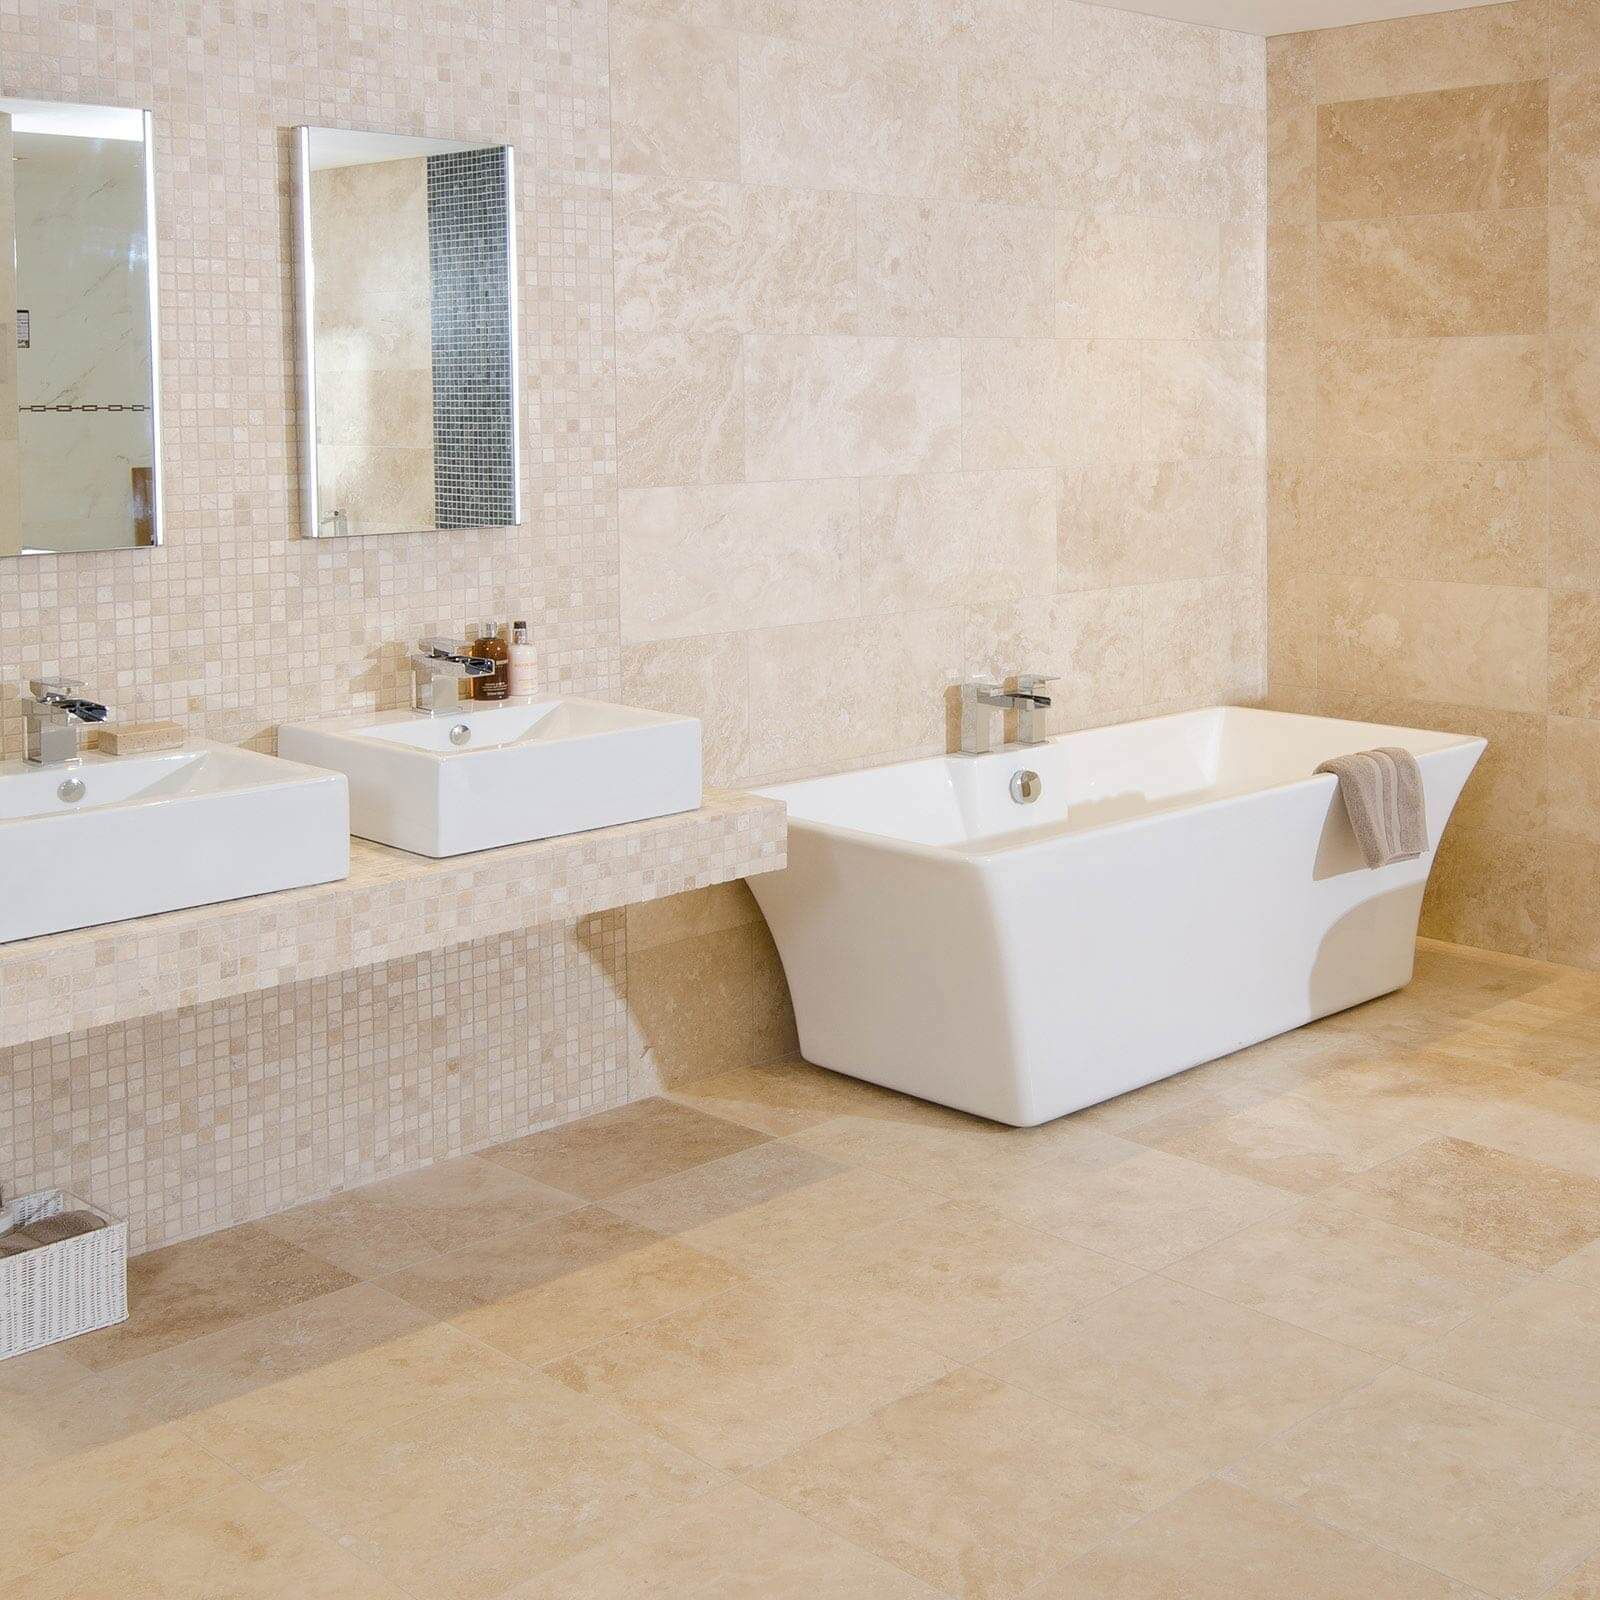 Bathroom Perfect Combination Tiles Textures Wall And Floor With Beige Bathroom Tiles Texture Beige Bathroom Bathroom Design Bathroom Wall Tile